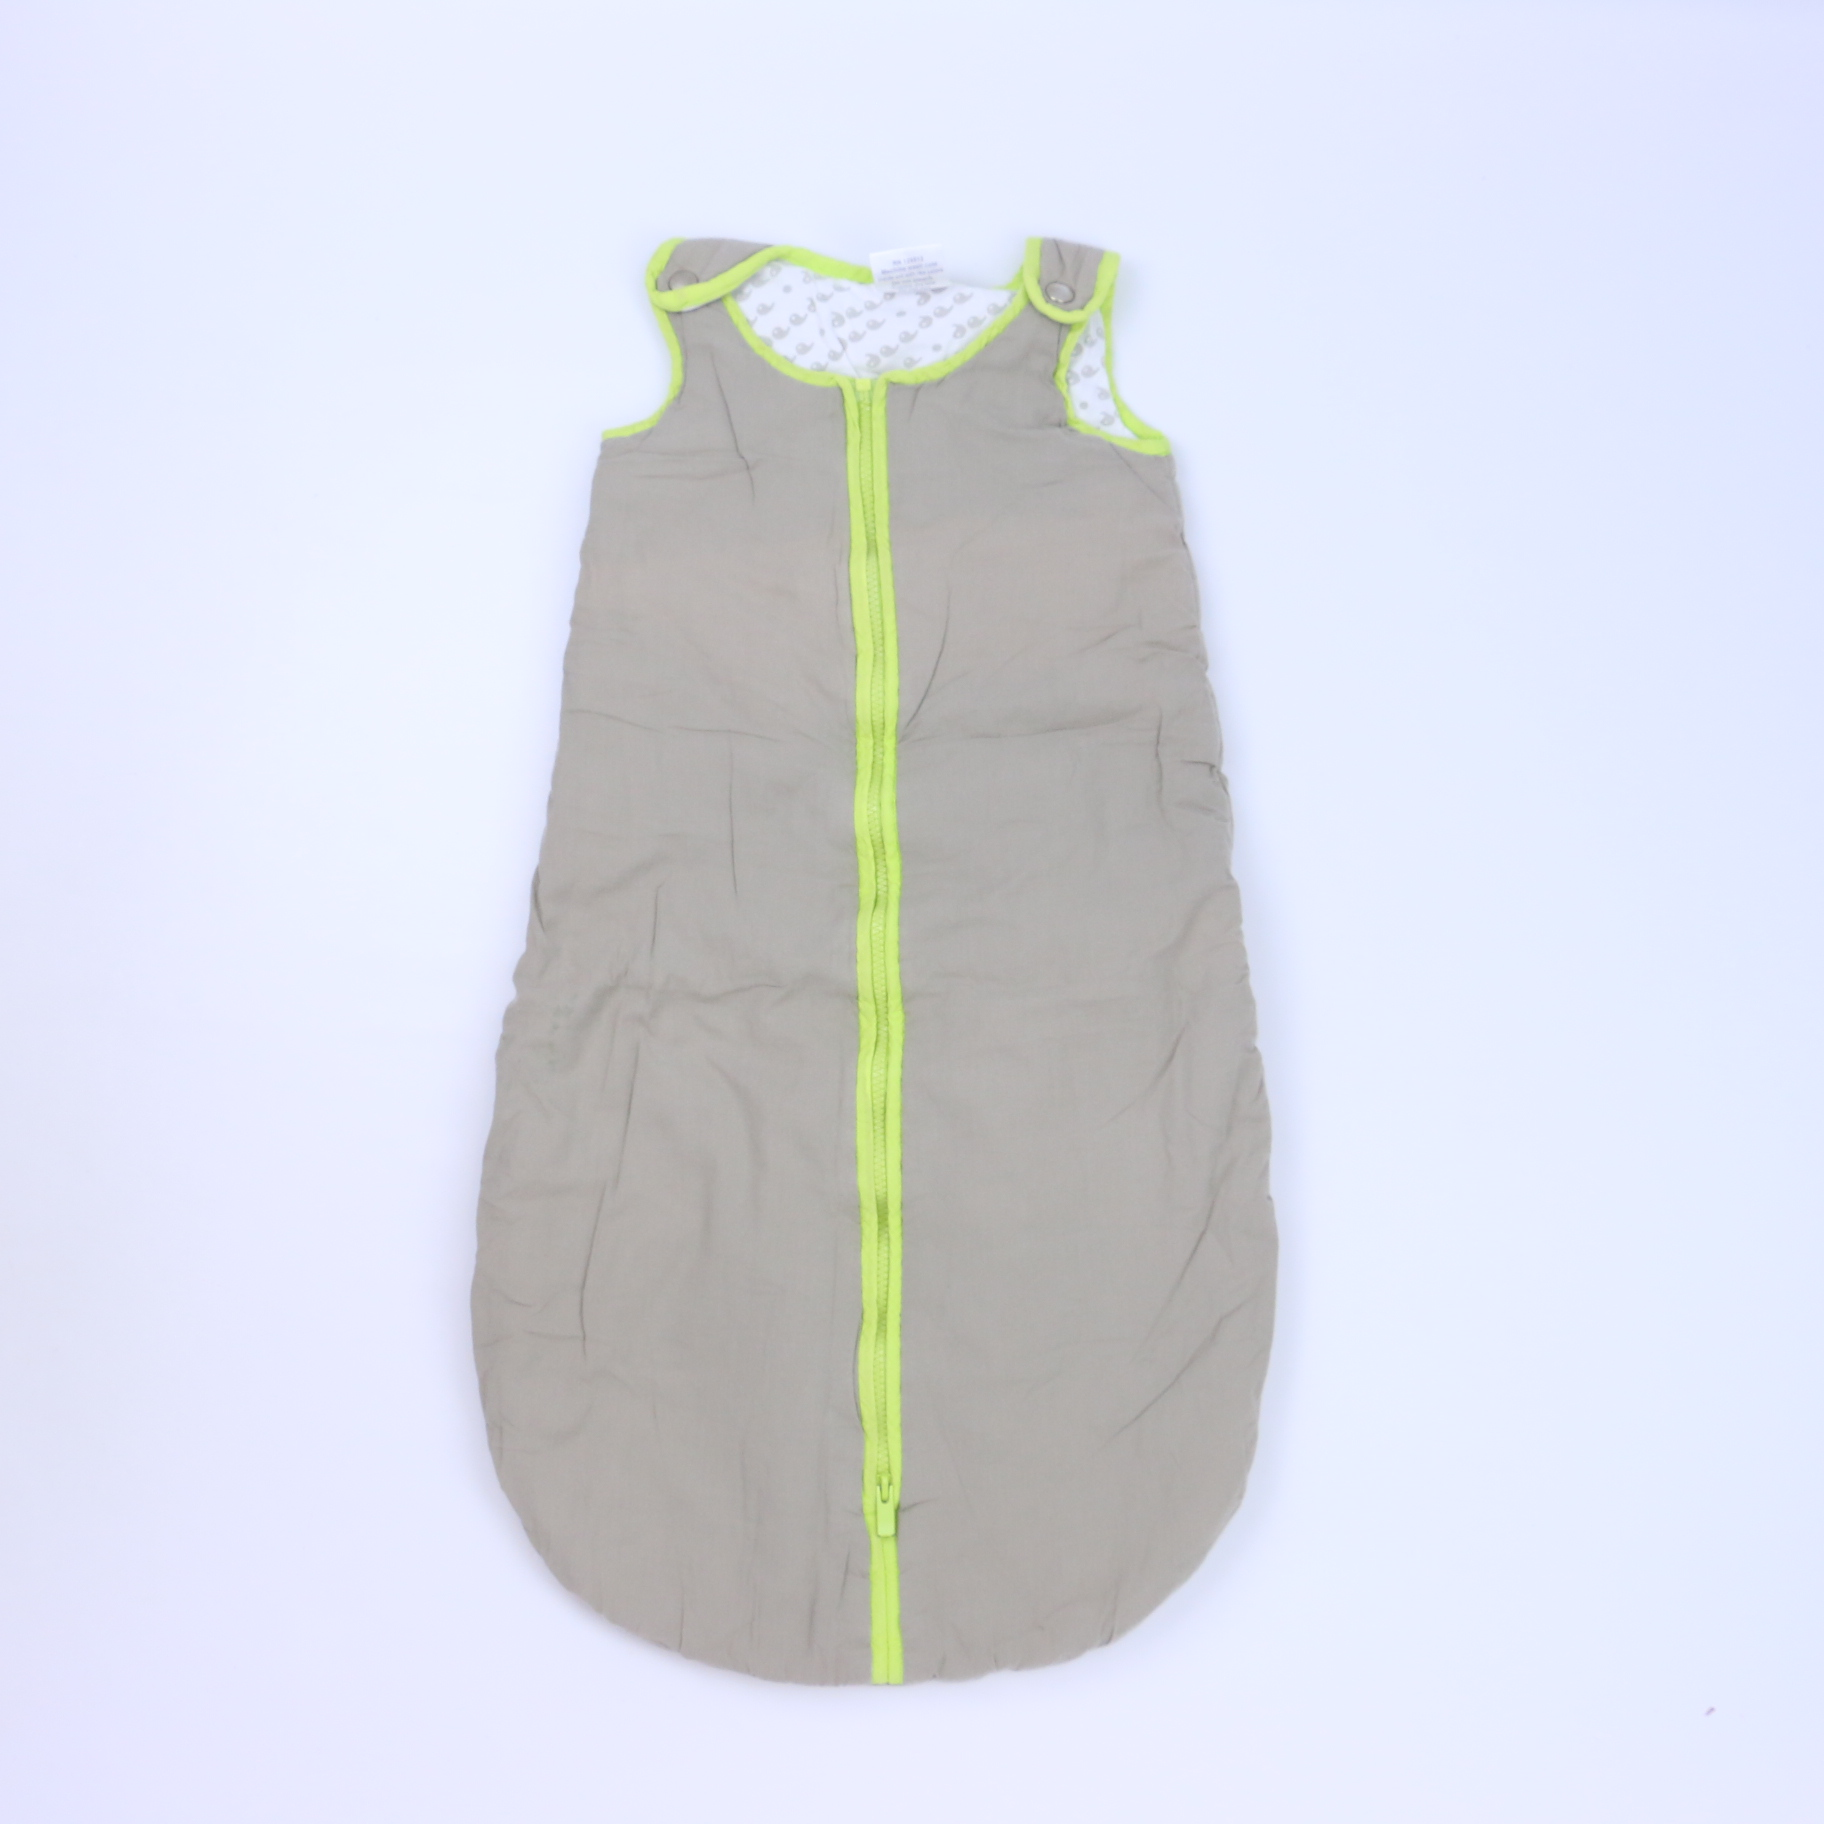 Sleepsack size: 6-18 Months - The Swoondle Society